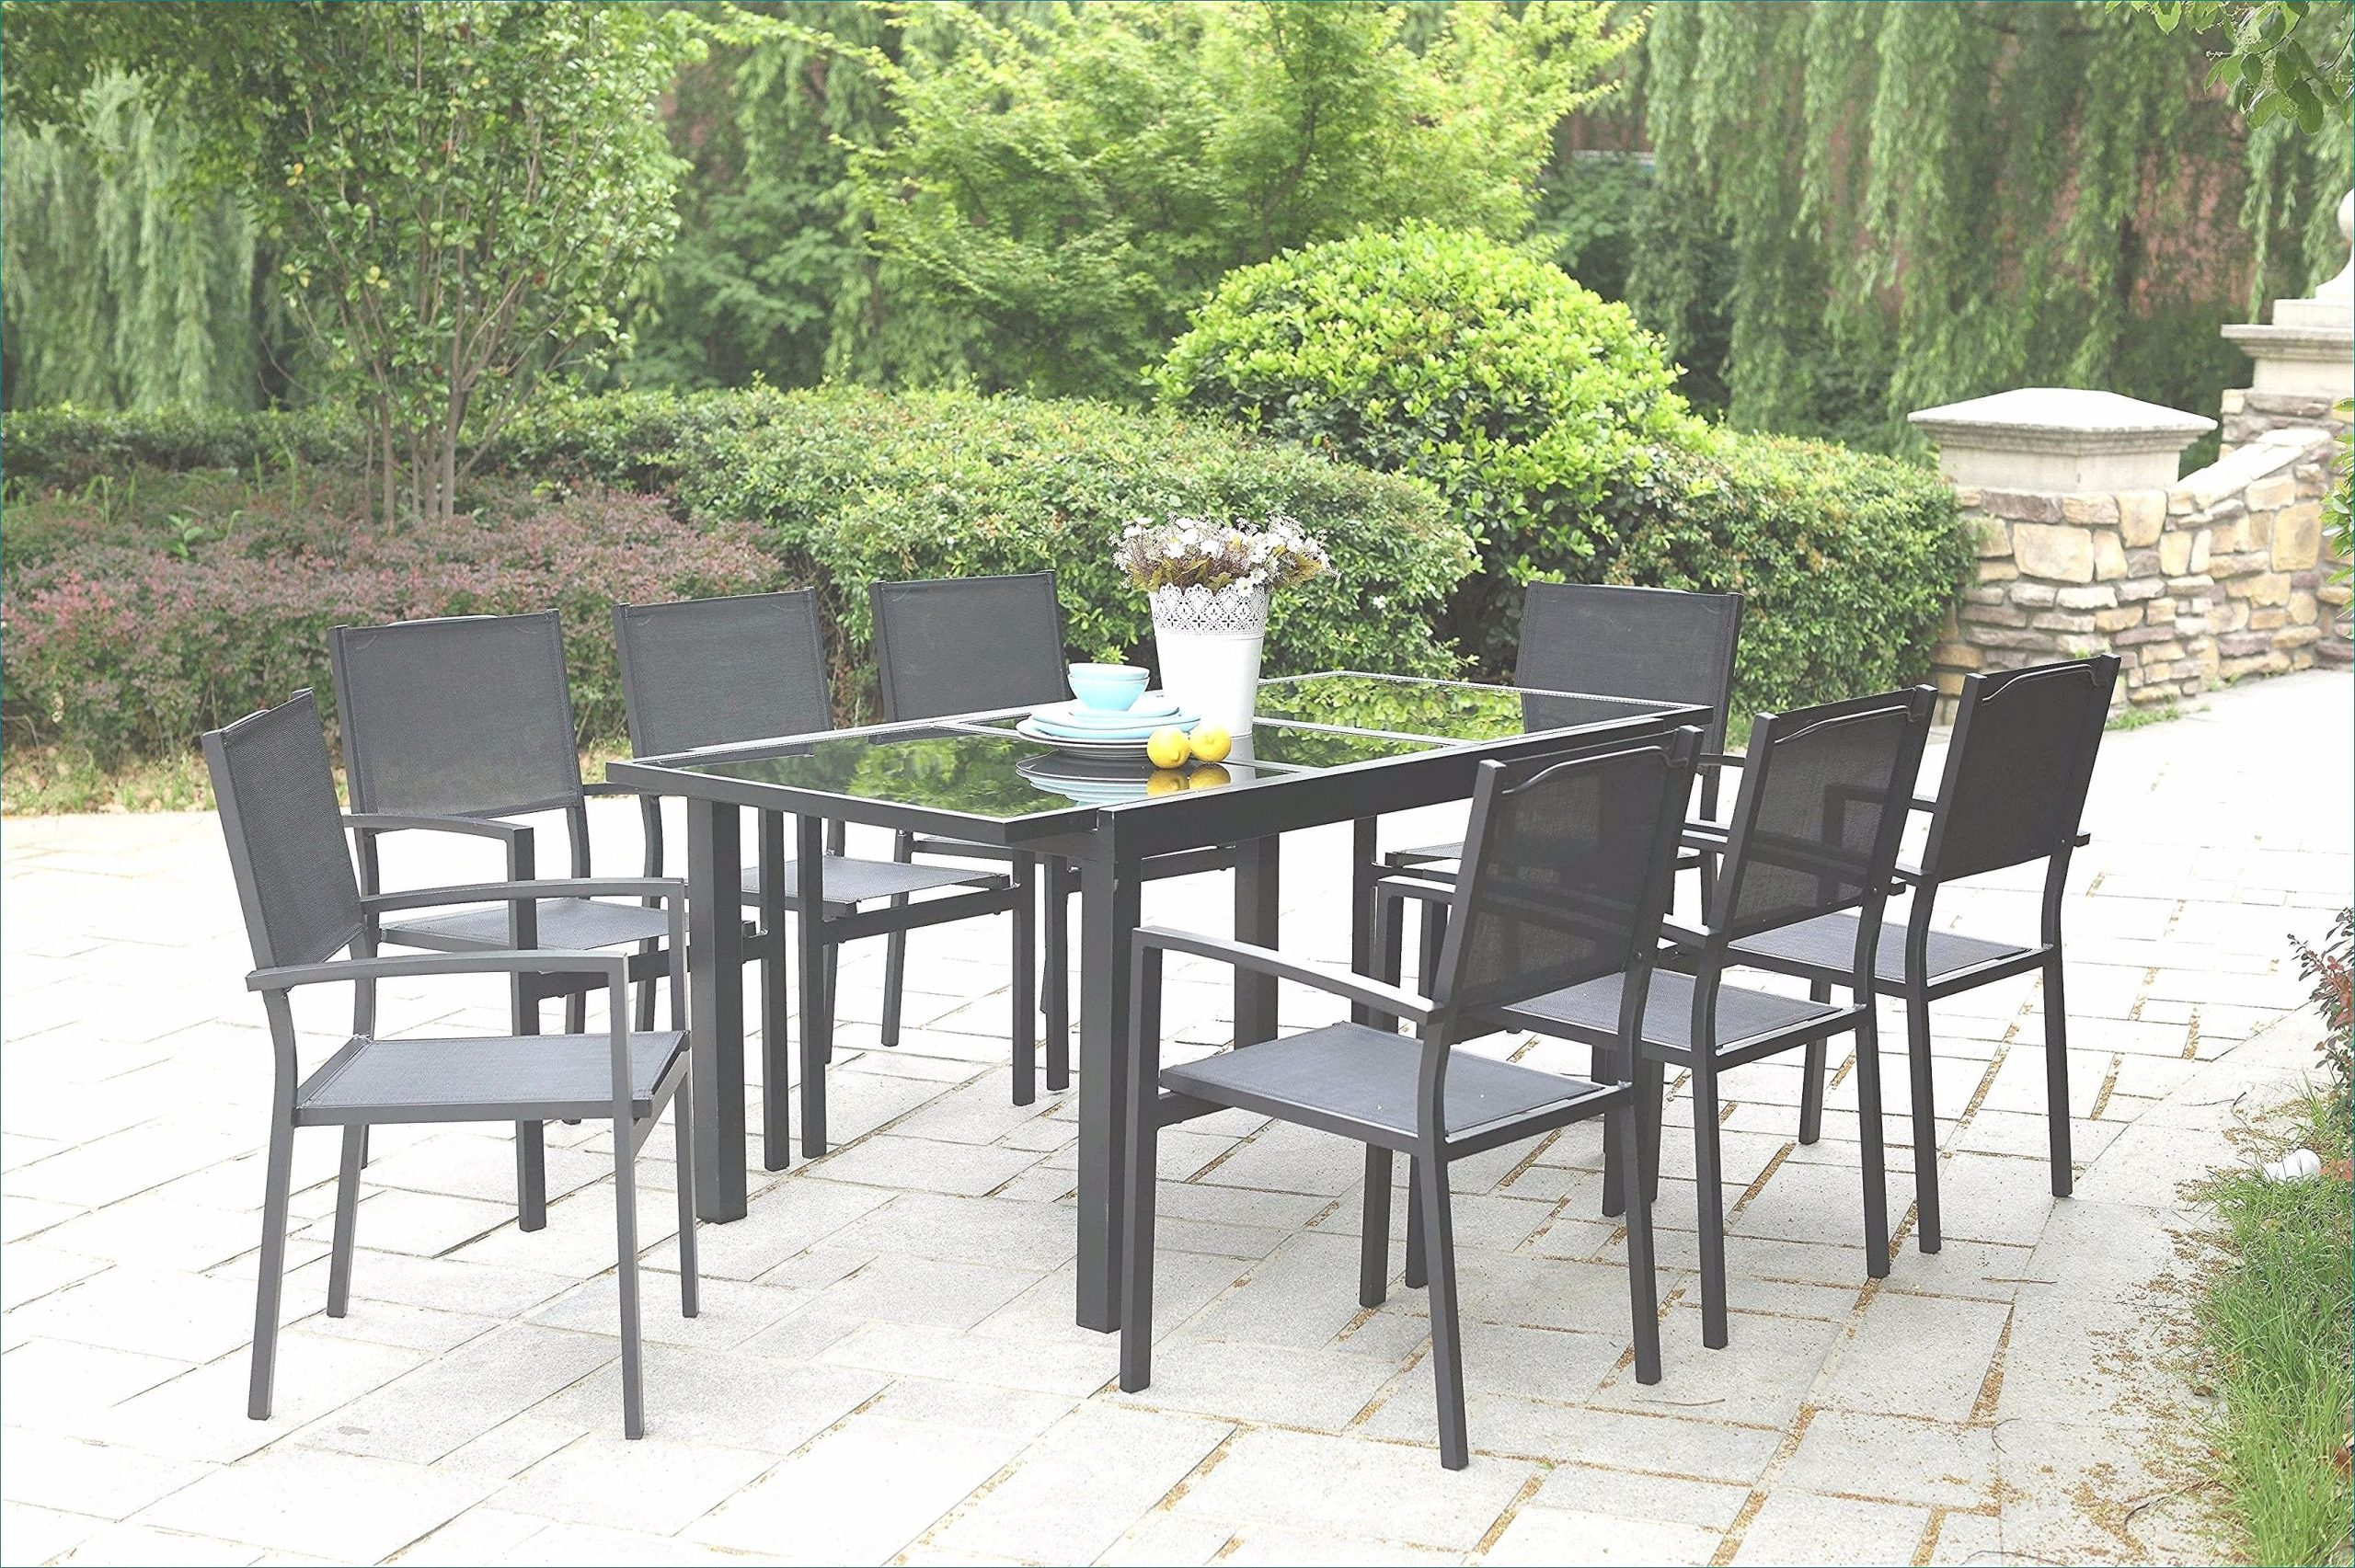 Salon De Jardin Grosfillex | Outdoor Furniture Sets, Outdoor ... serapportantà Salon De Jardin En Soldes